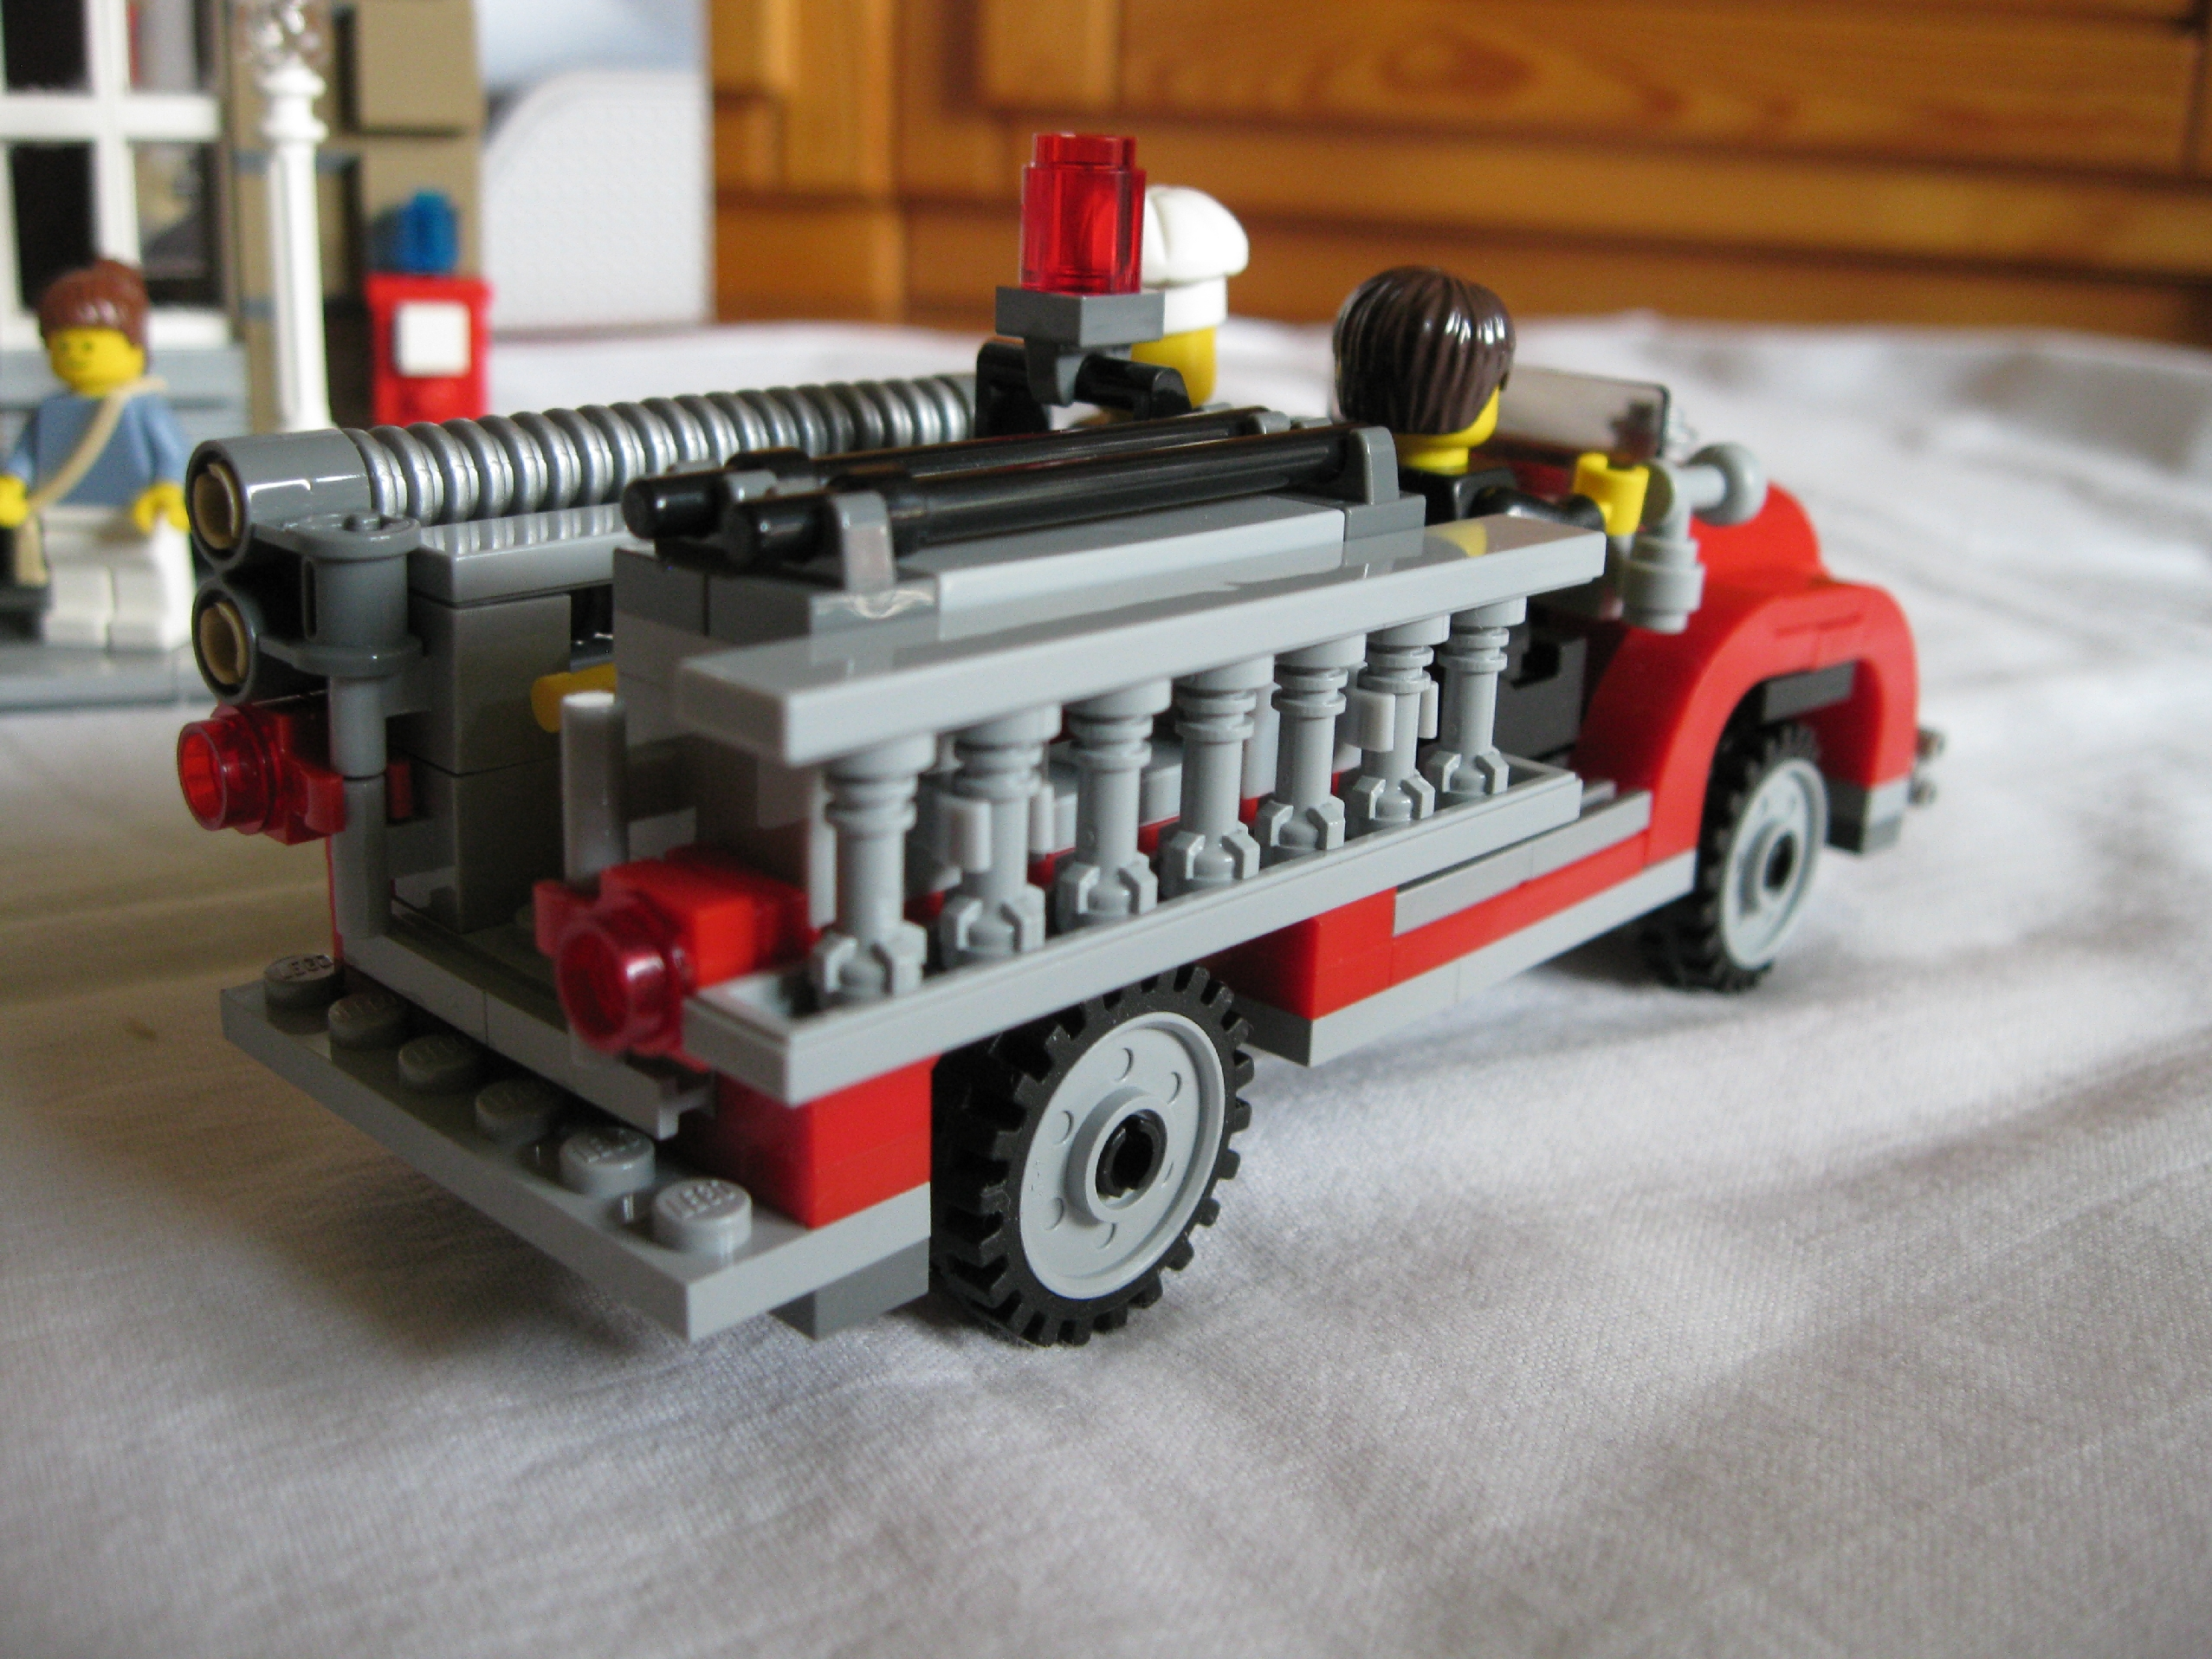 10197fireengineside2.jpg